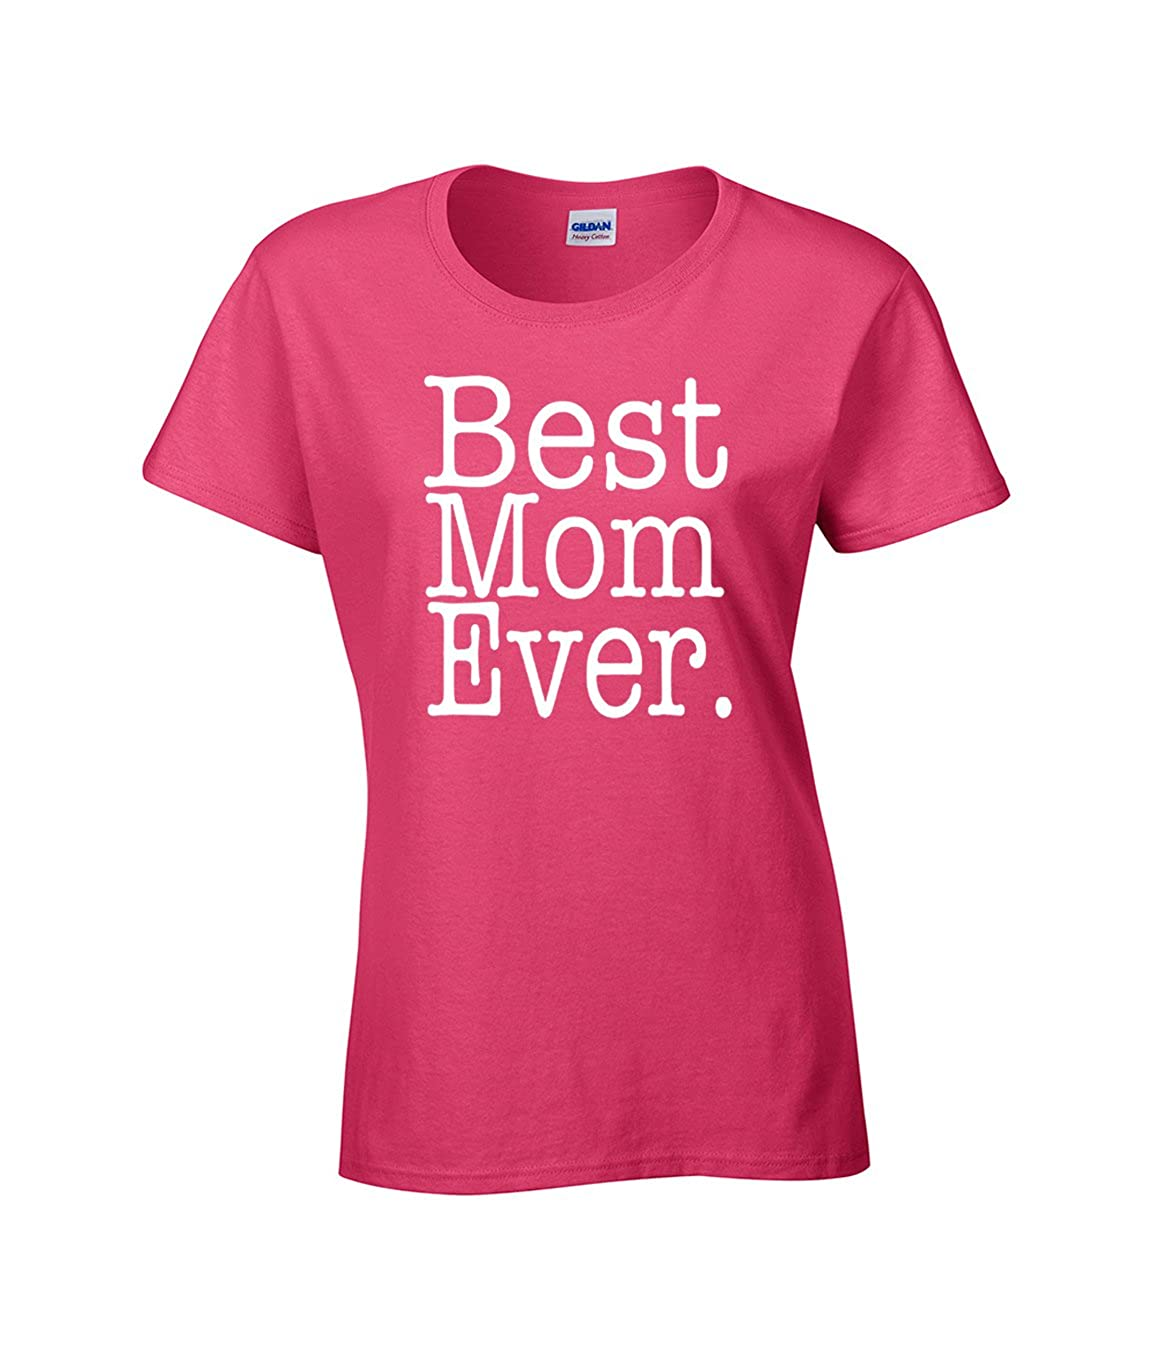 Amazon.com: AW Fashions Best Mom Ever - Funny Mothers Day Present for Mommy Ladies T-Shirt: Clothing